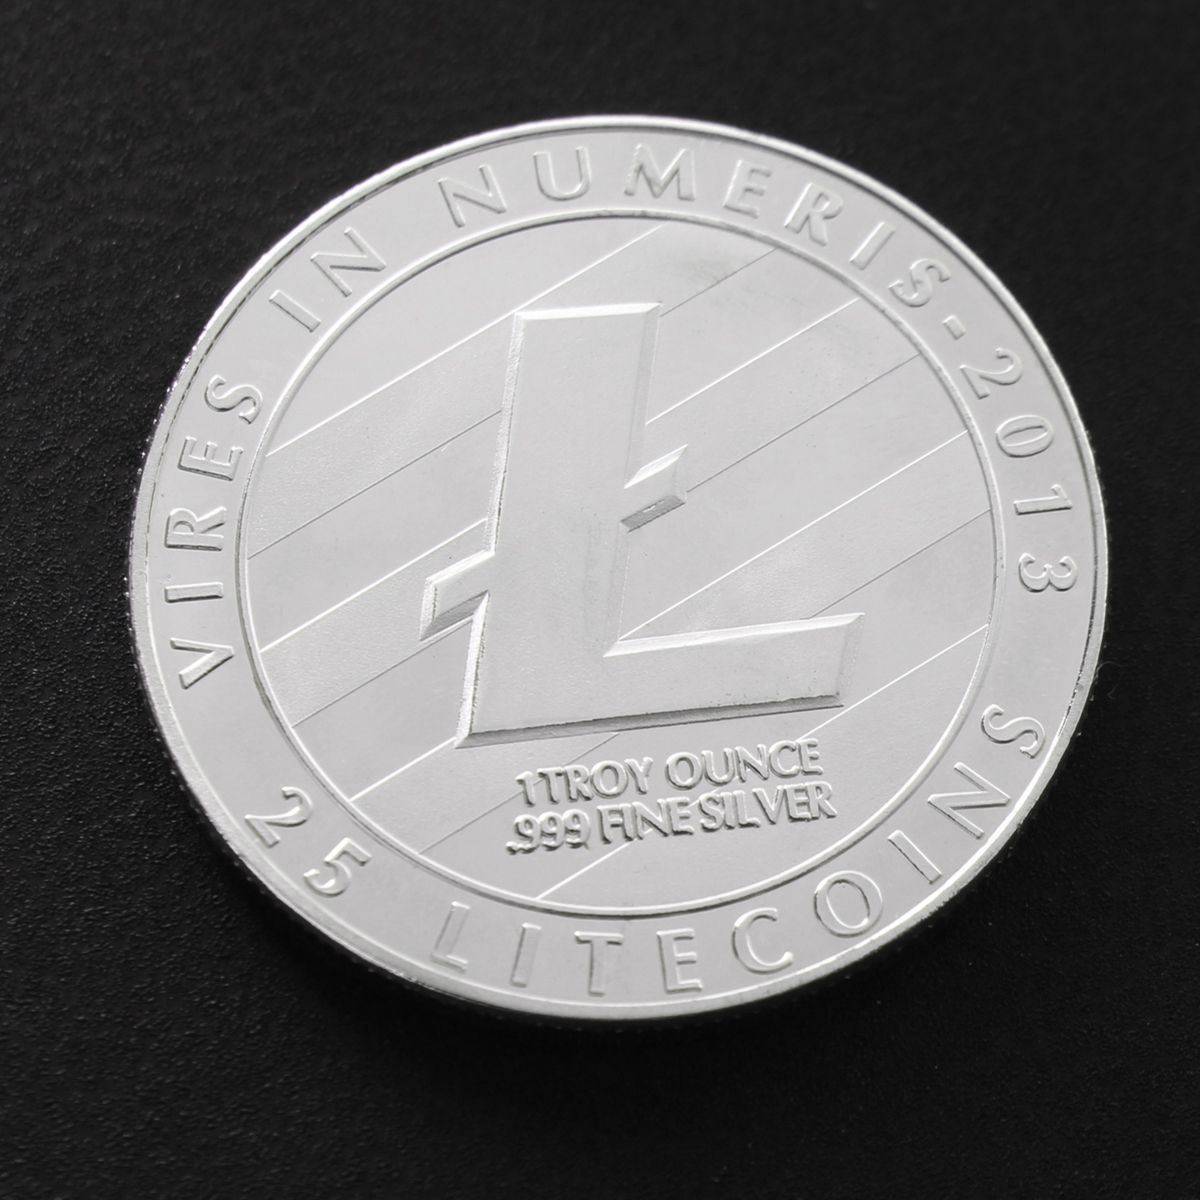 1pcs Silver Copper Plated Commemorative Litecoin Model Collectible Golden Iron Miner Coin Gift